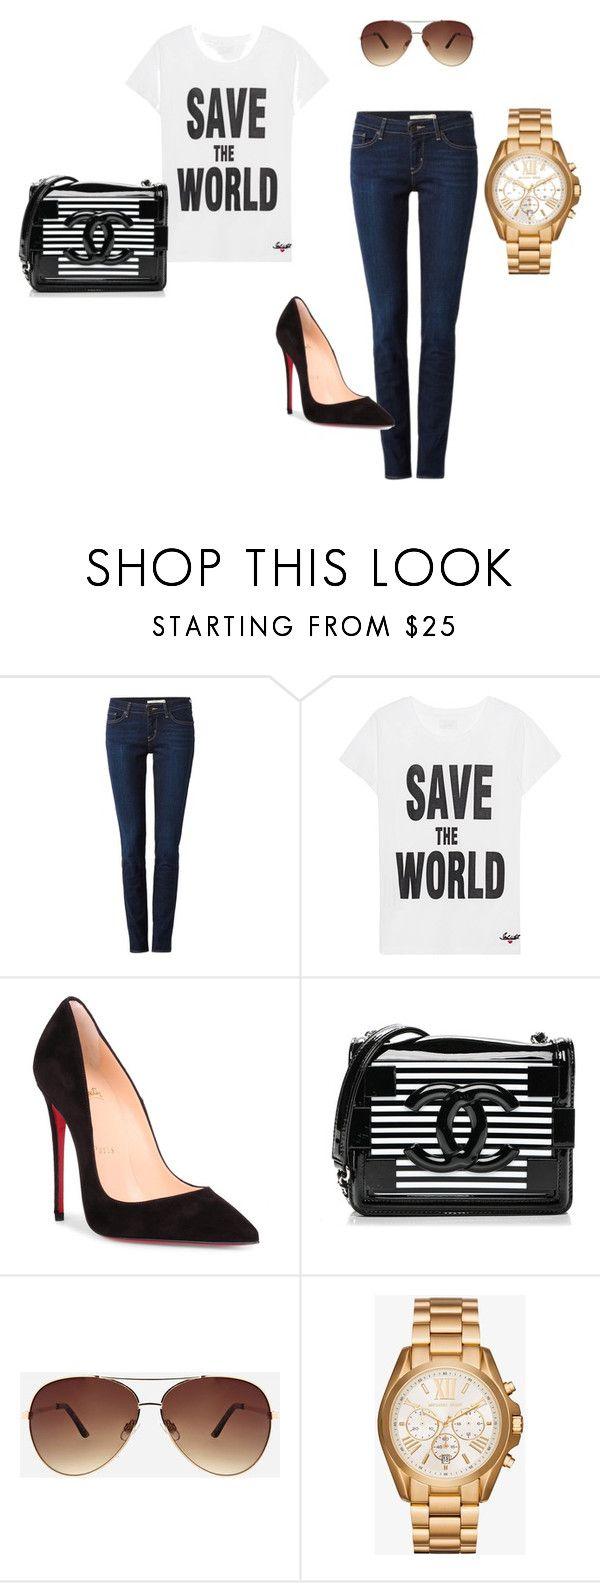 """Untitled #24"" by ivananna on Polyvore featuring Levi's, Jadicted, Christian Louboutin, Chanel, Ashley Stewart and Michael Kors"